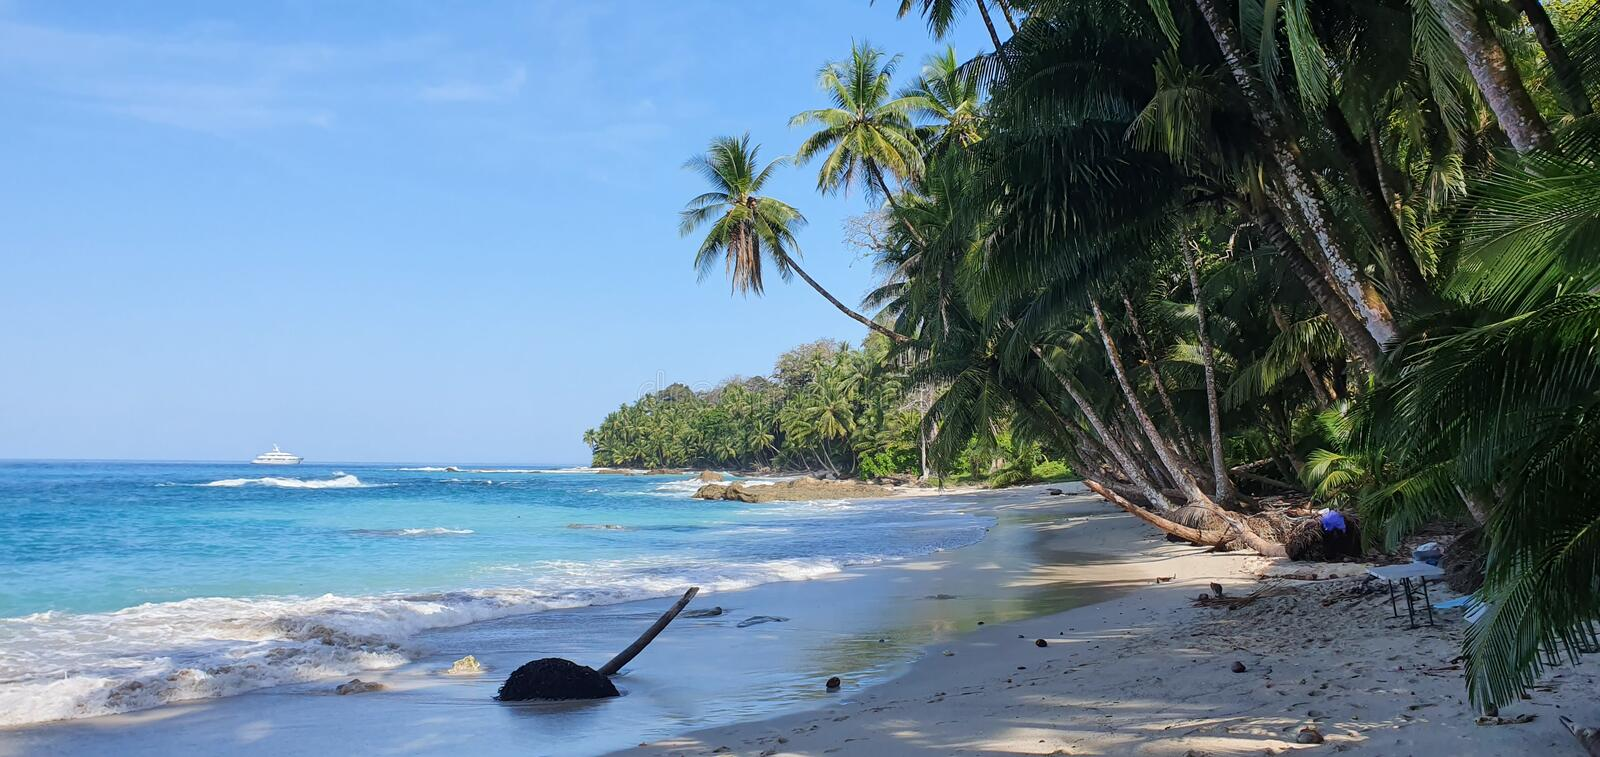 Amazing beach with lots of palmtrees, blue water, white sand royalty free stock images